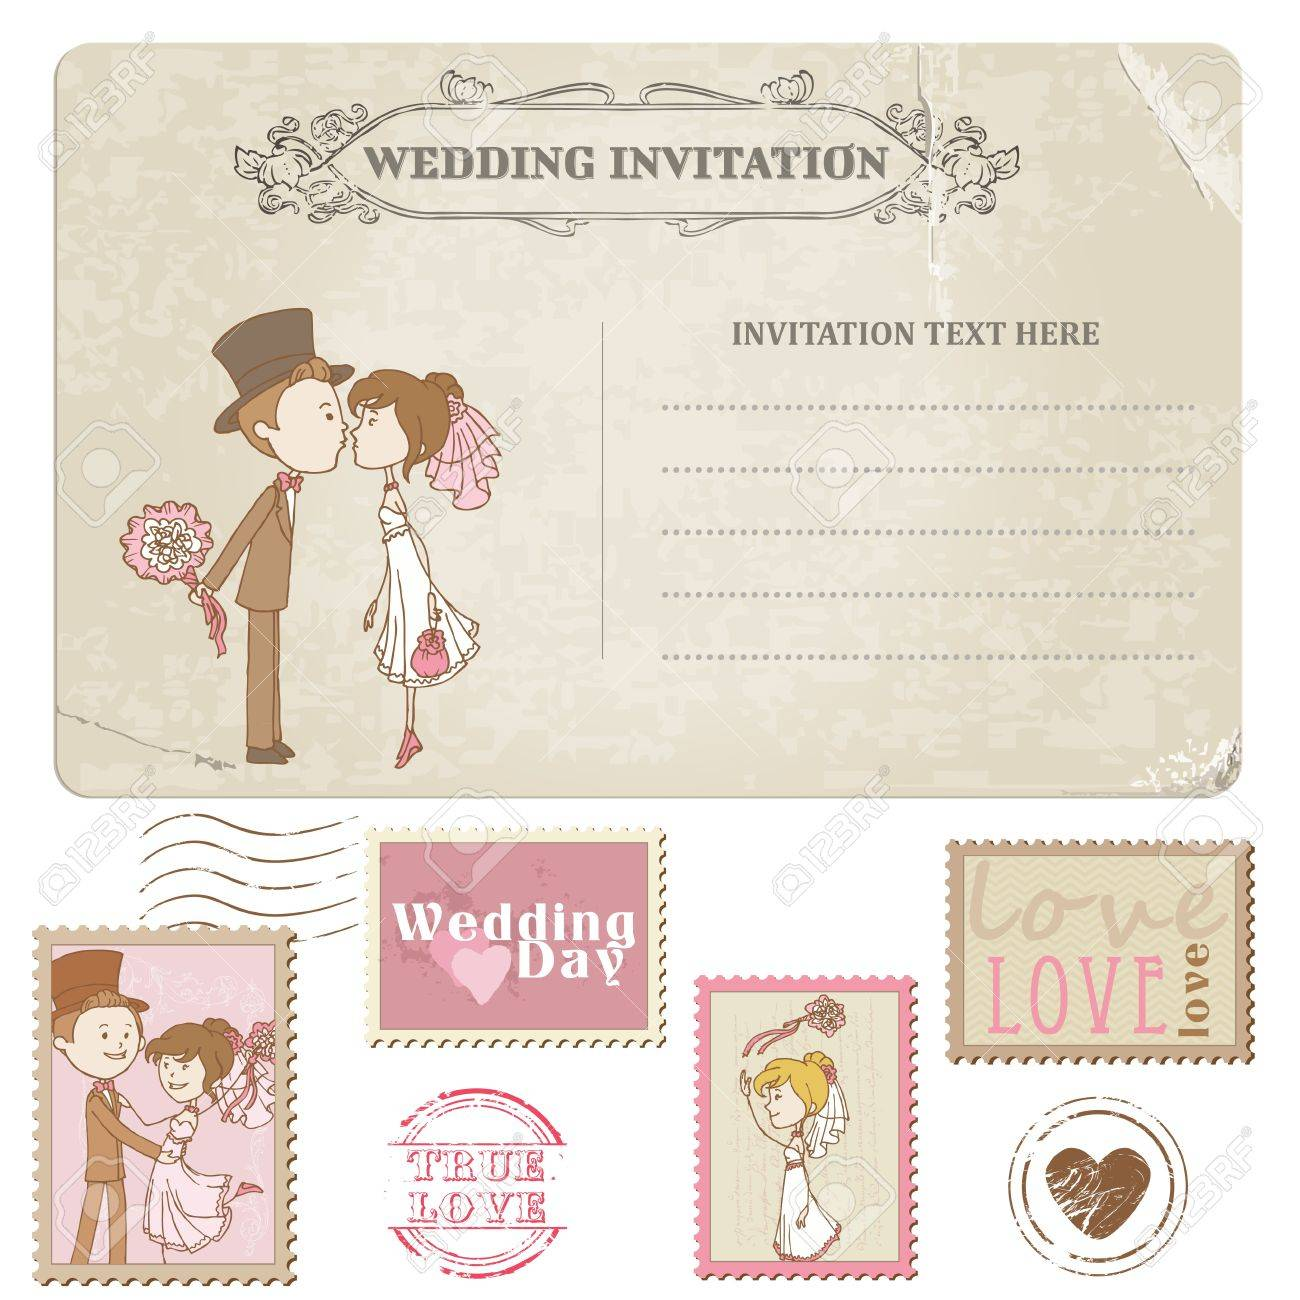 Wedding Postcard And Postage Stamps   For Wedding Design, Invitation,  Congratulation, Scrapbook Stock